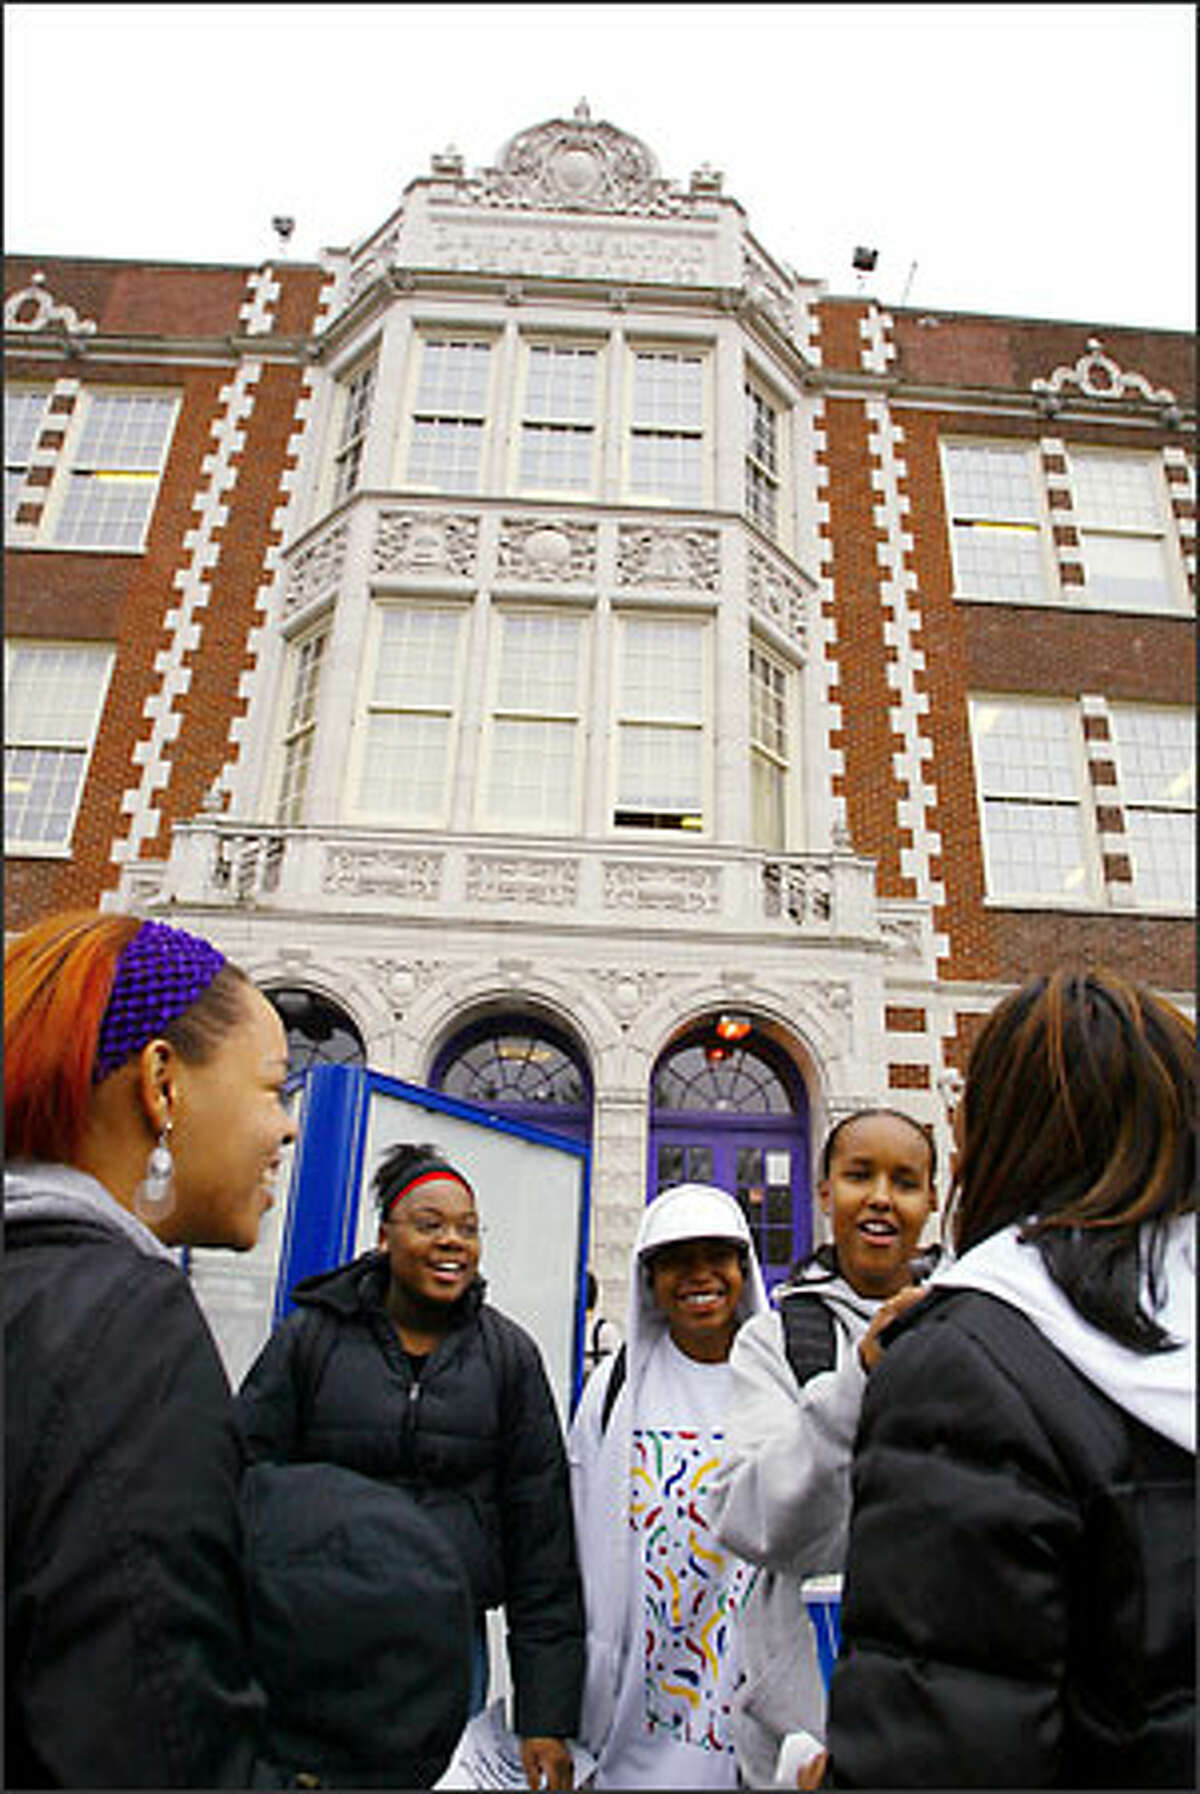 Garfield High students Brenia Sherrod, 16, Takiyah Ward, 16, and Nasra Abdule, 16, stand outside the school during lunchtime. About 30 percent of students at Garfield are black, a dramatic decline from the early '70s. Some parents believe their children are being excluded from honors classes at their